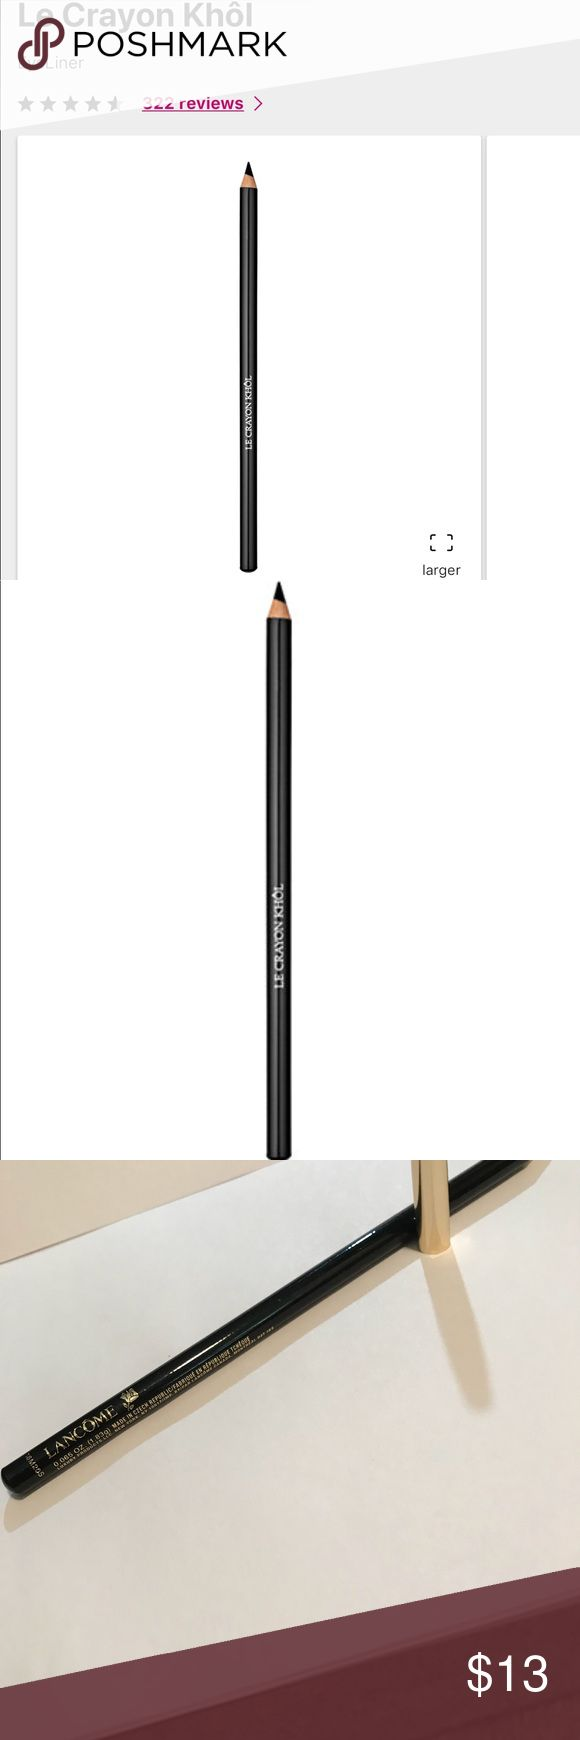 Lancôme👁Liner-Le Crayon Khol-602 Black Ebony New.no box. It has a chip off the top which can b seen in the last pic, so I included a sample size eyeliner also. Lancome Makeup Eyeliner